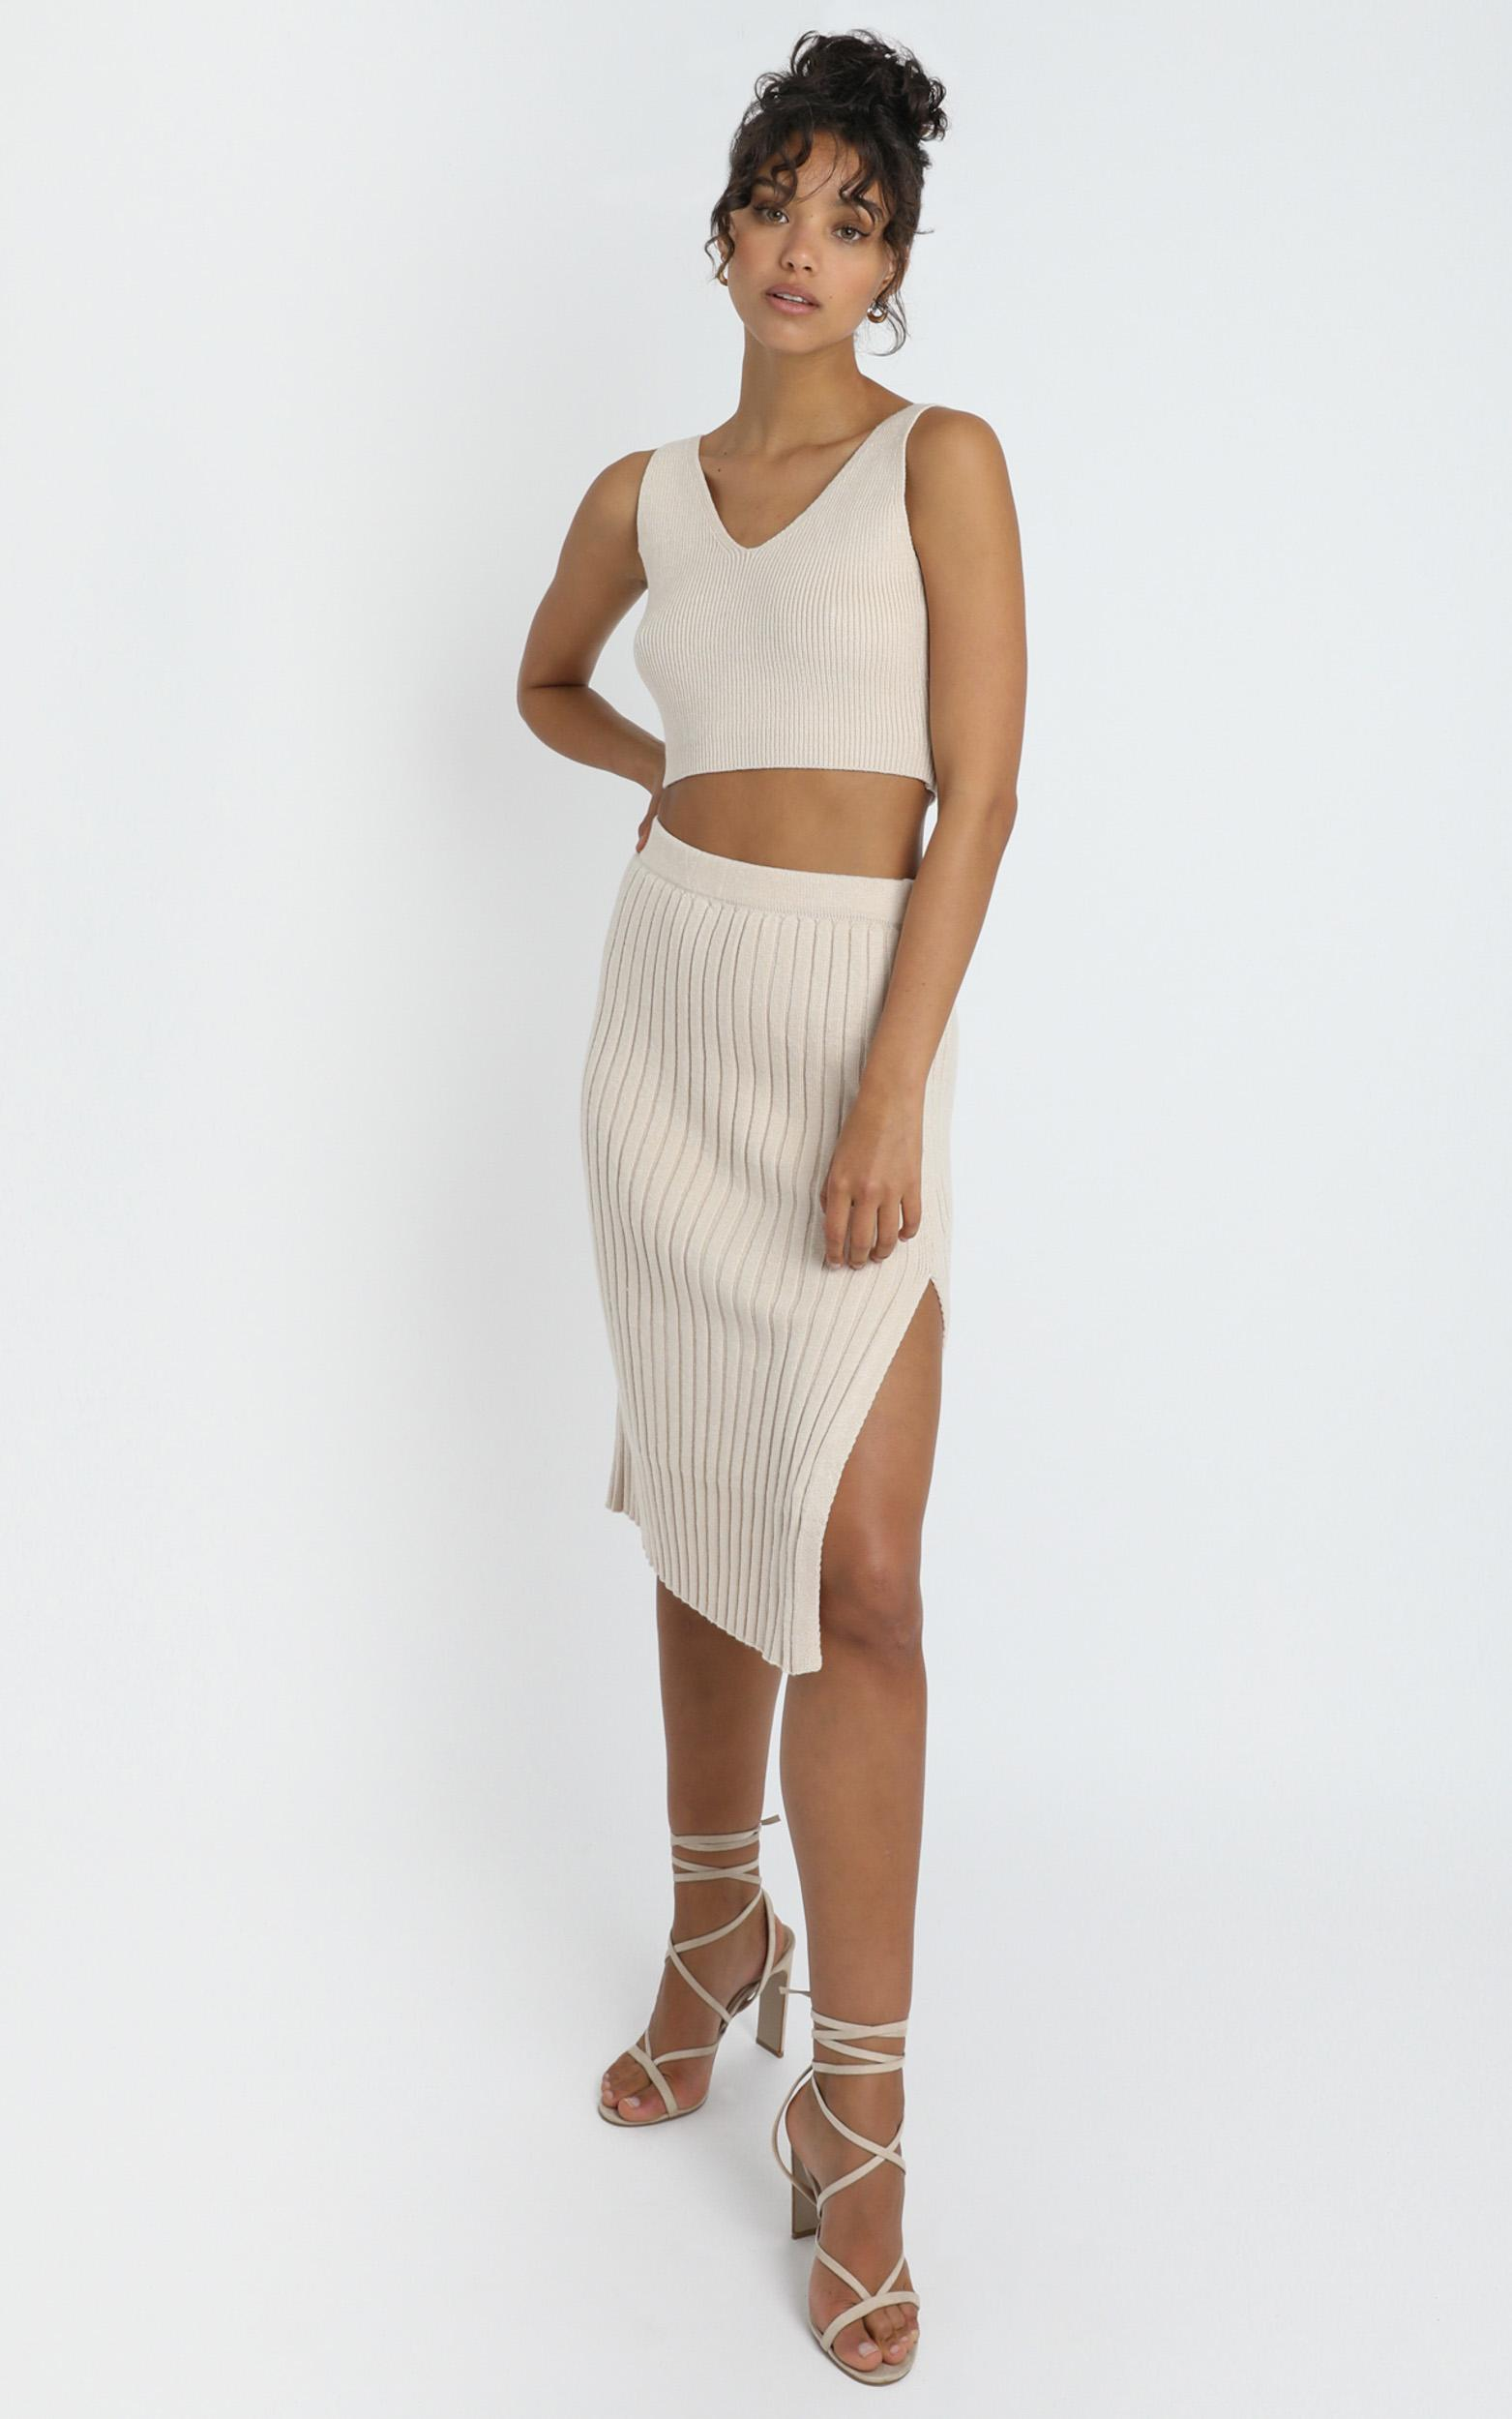 Yana Knit Skirt in Beige - 8 (S), Beige, hi-res image number null